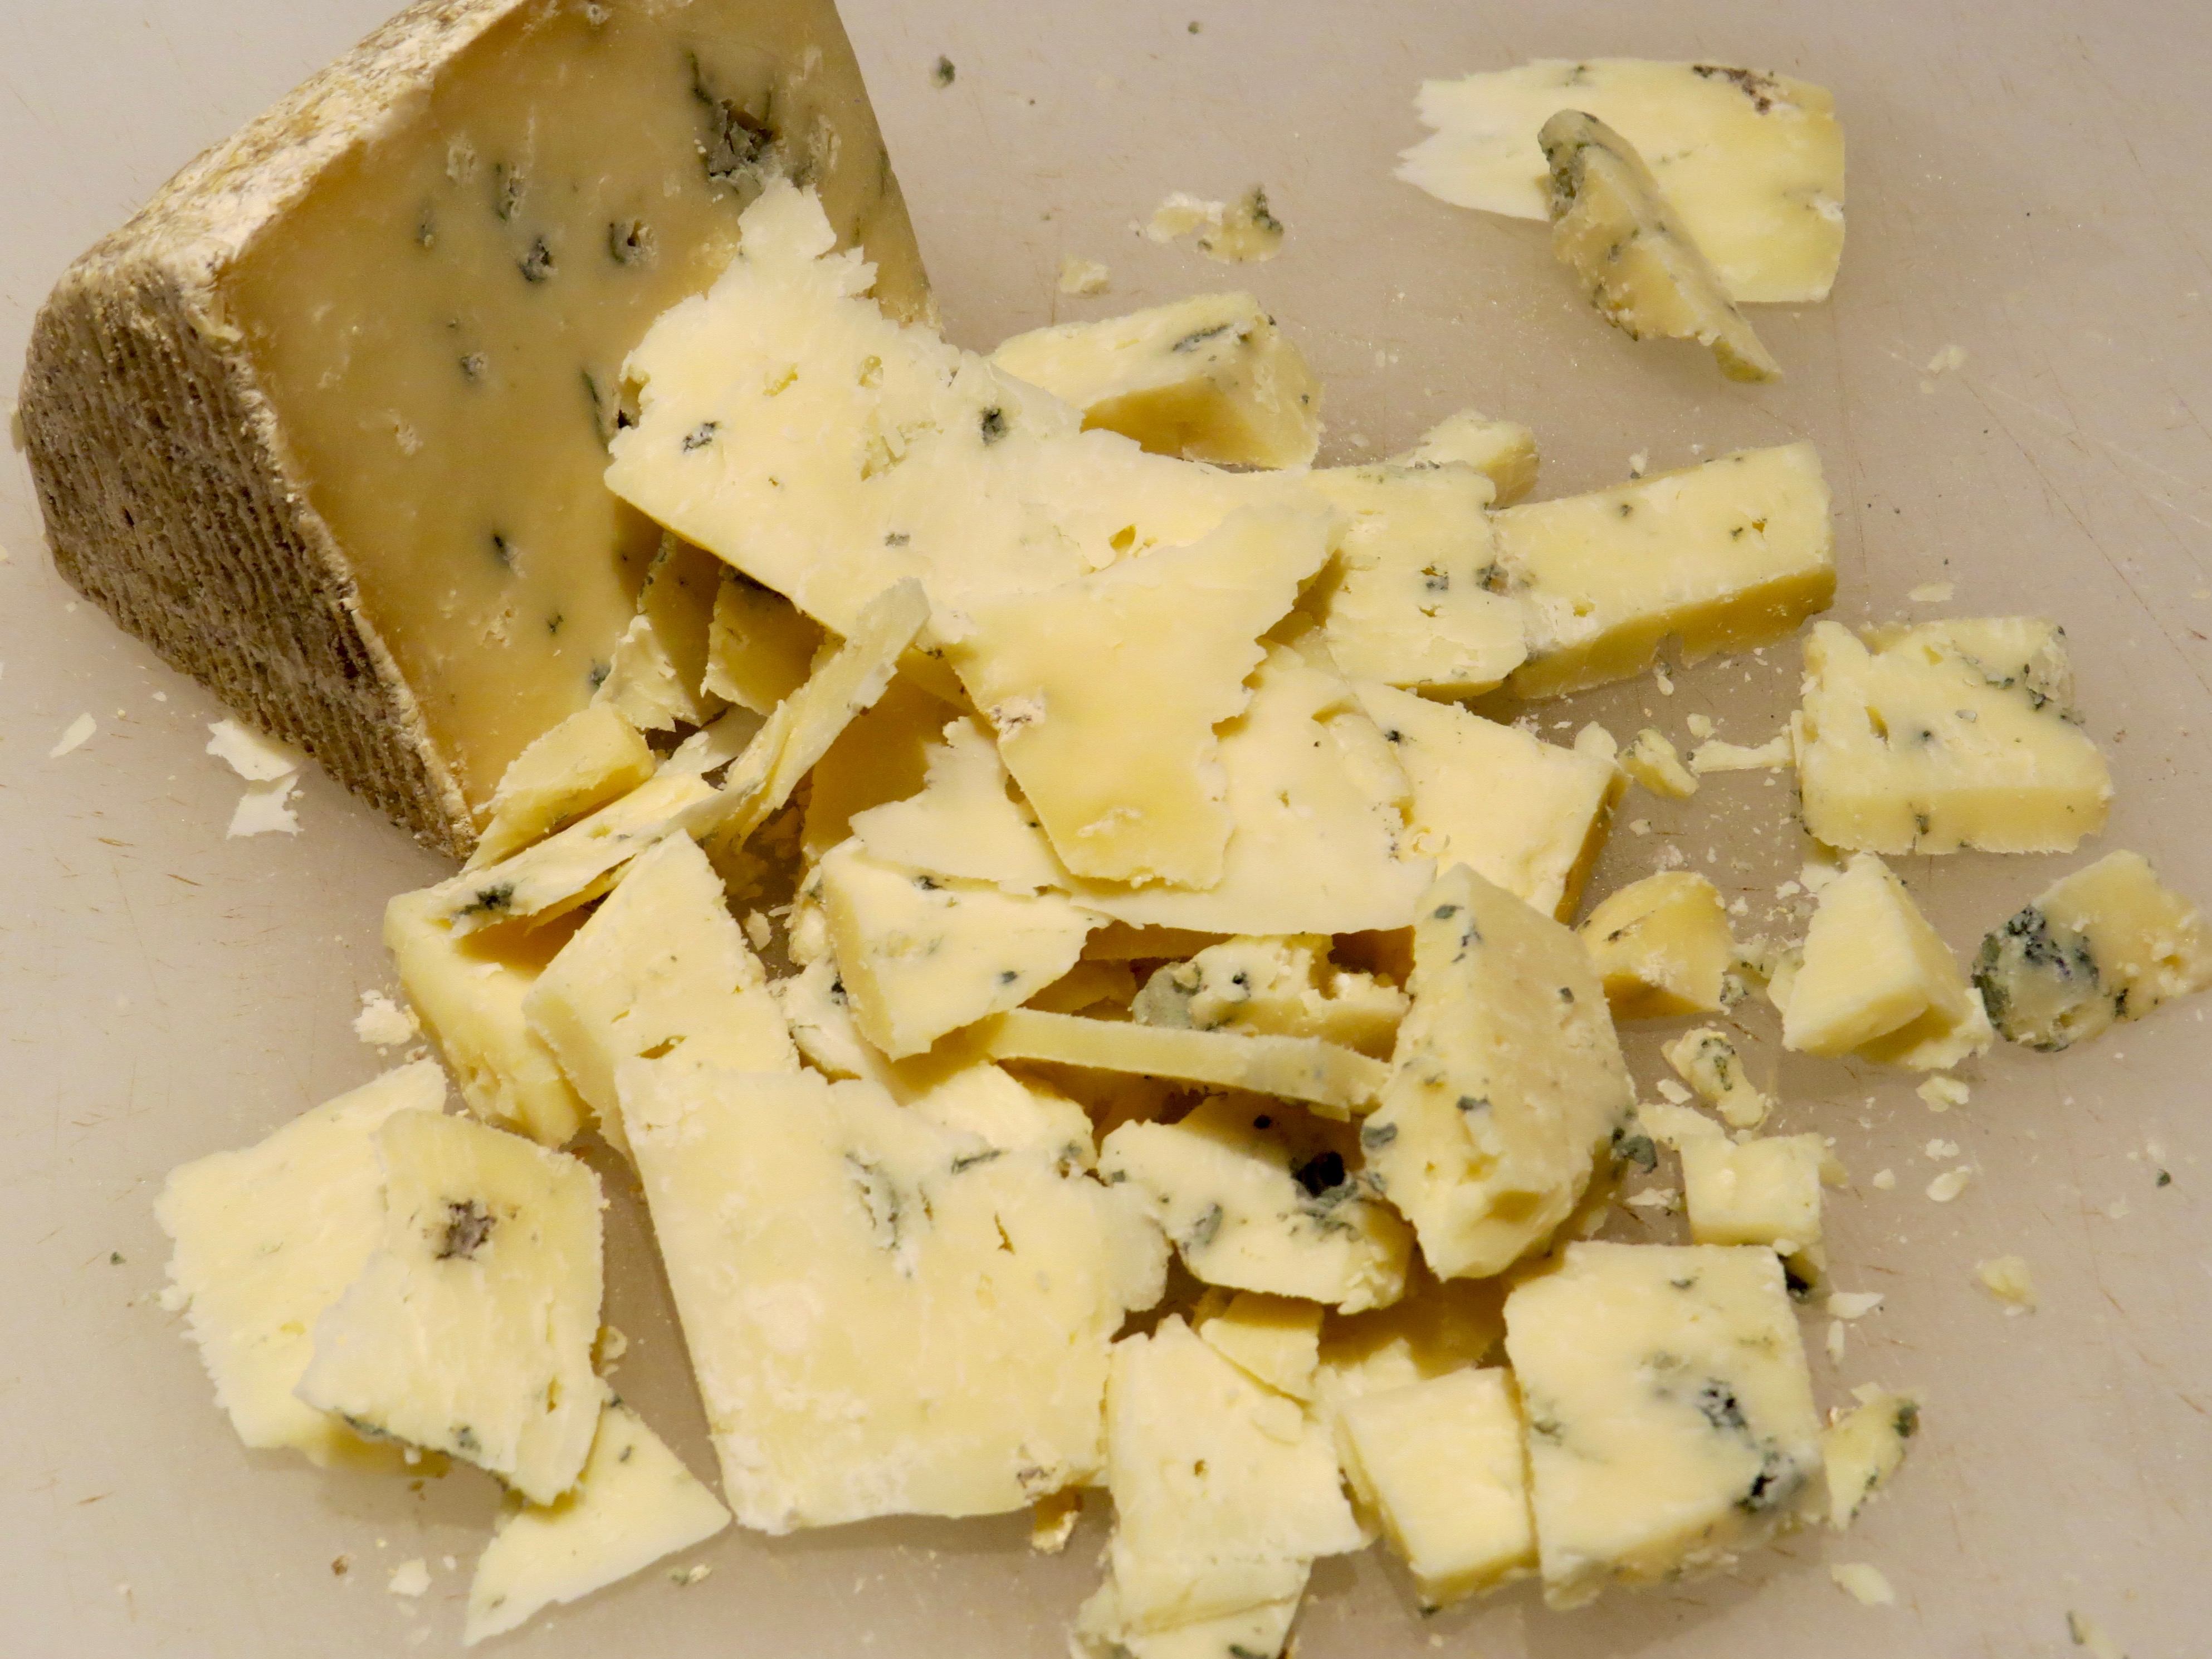 The cheese is bleu.